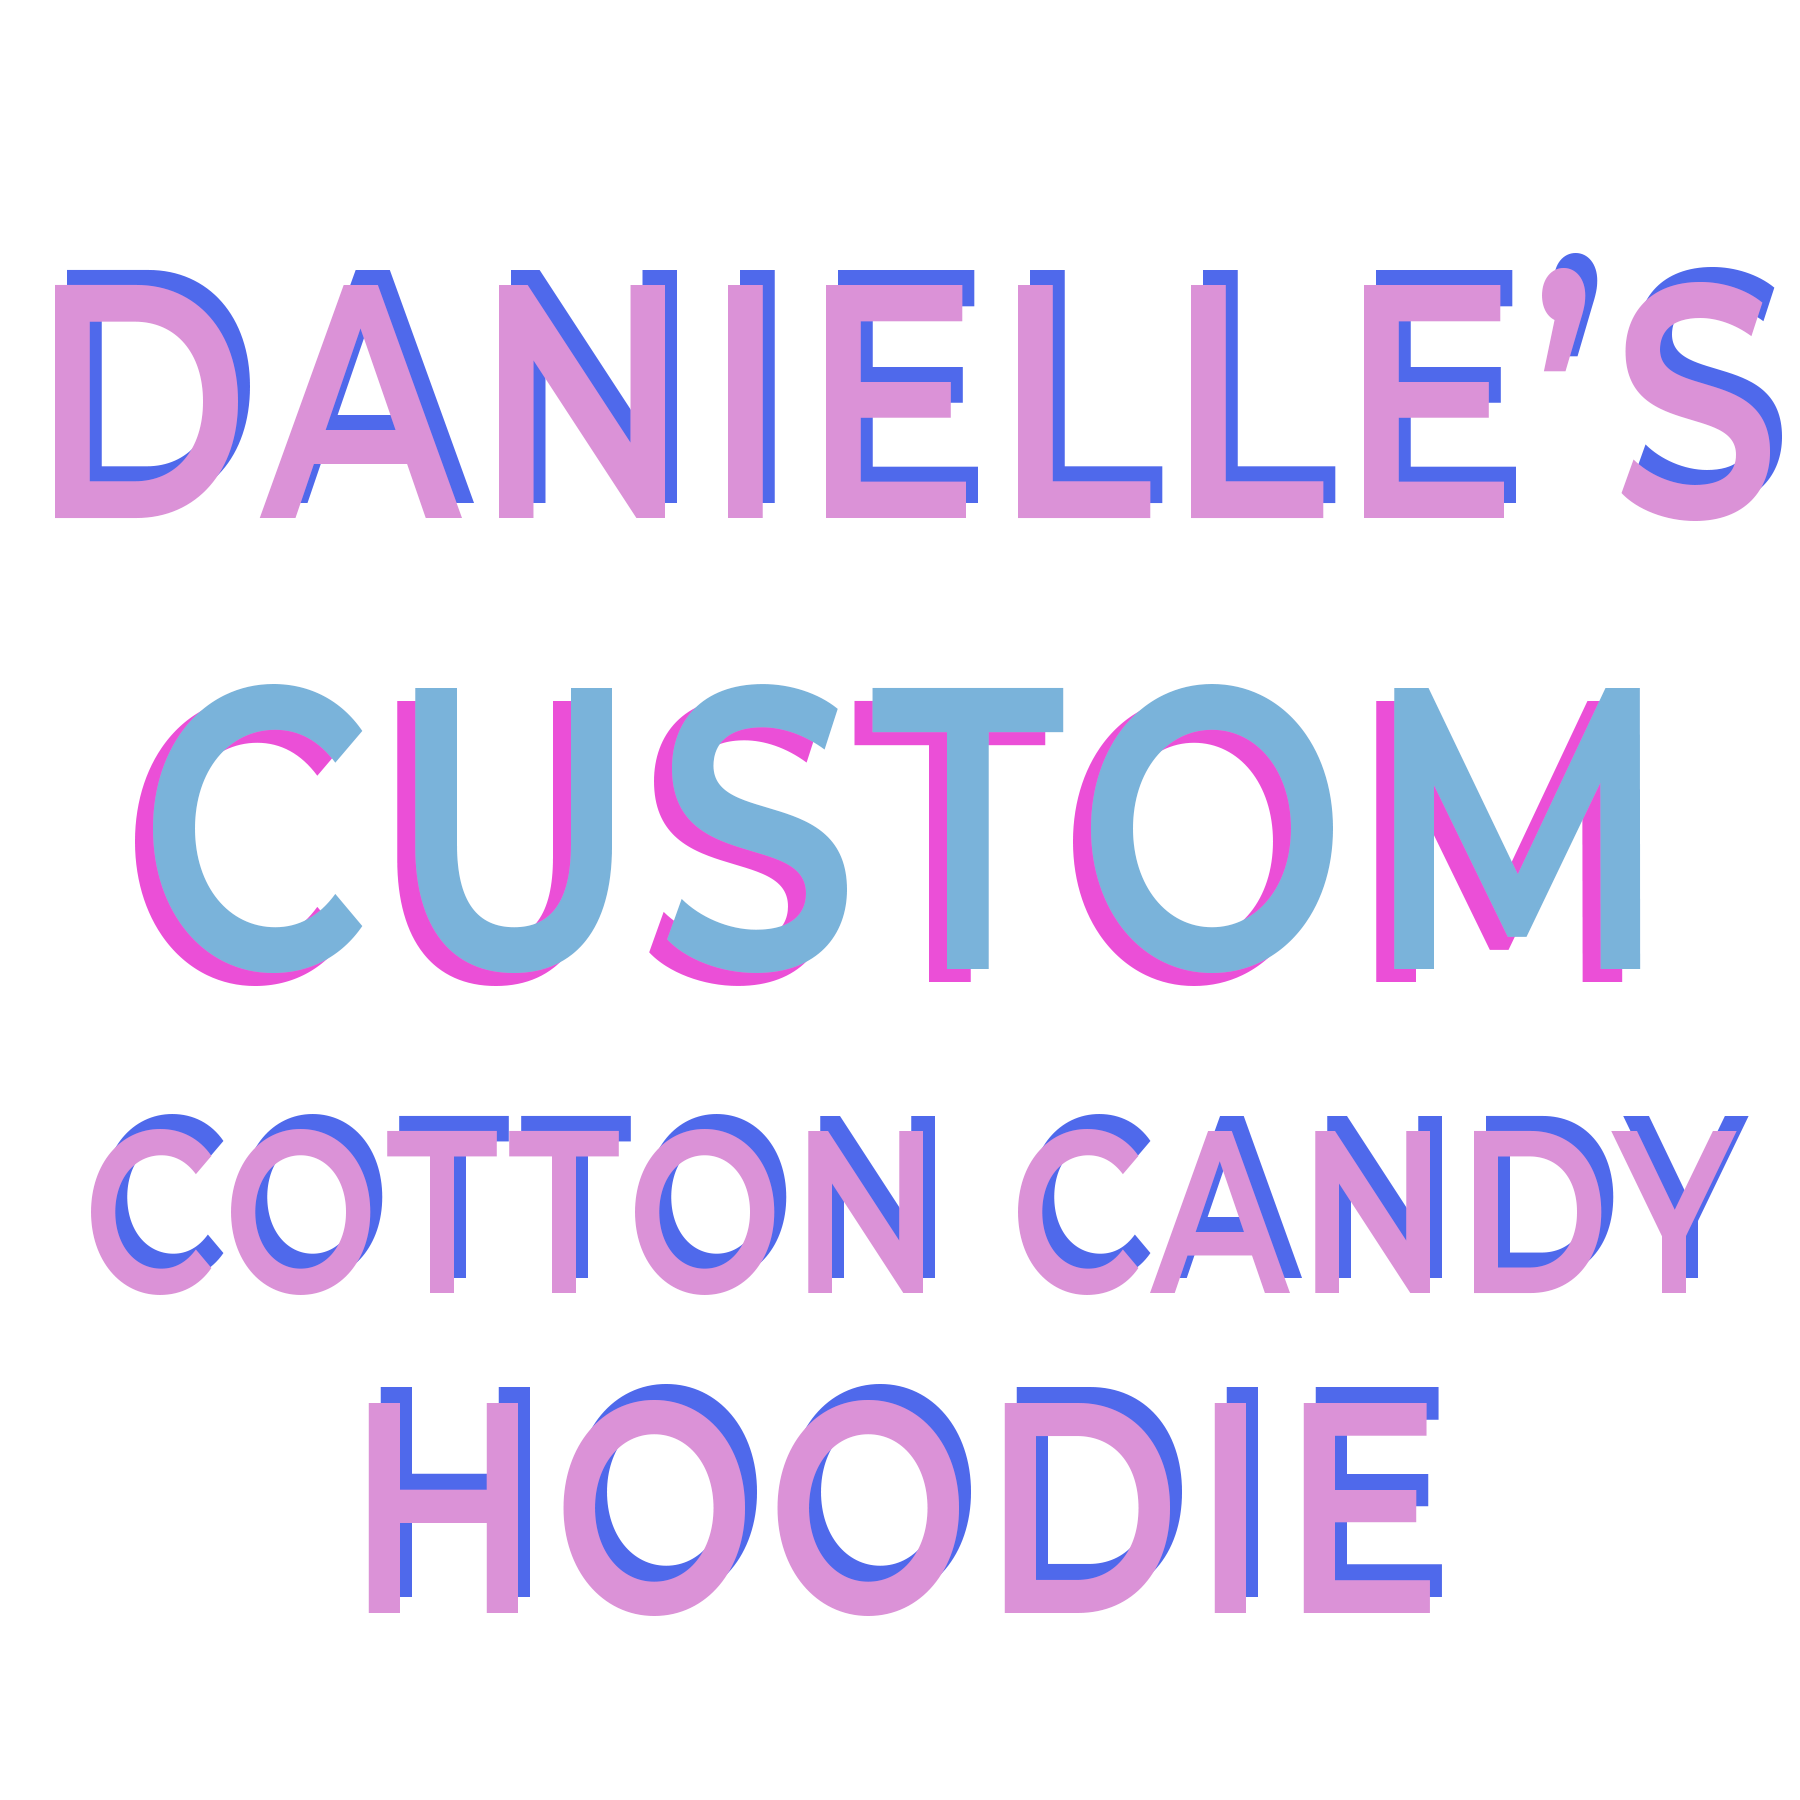 DANIELLE'S CUSTOM COTTON CANDY JOGGERS